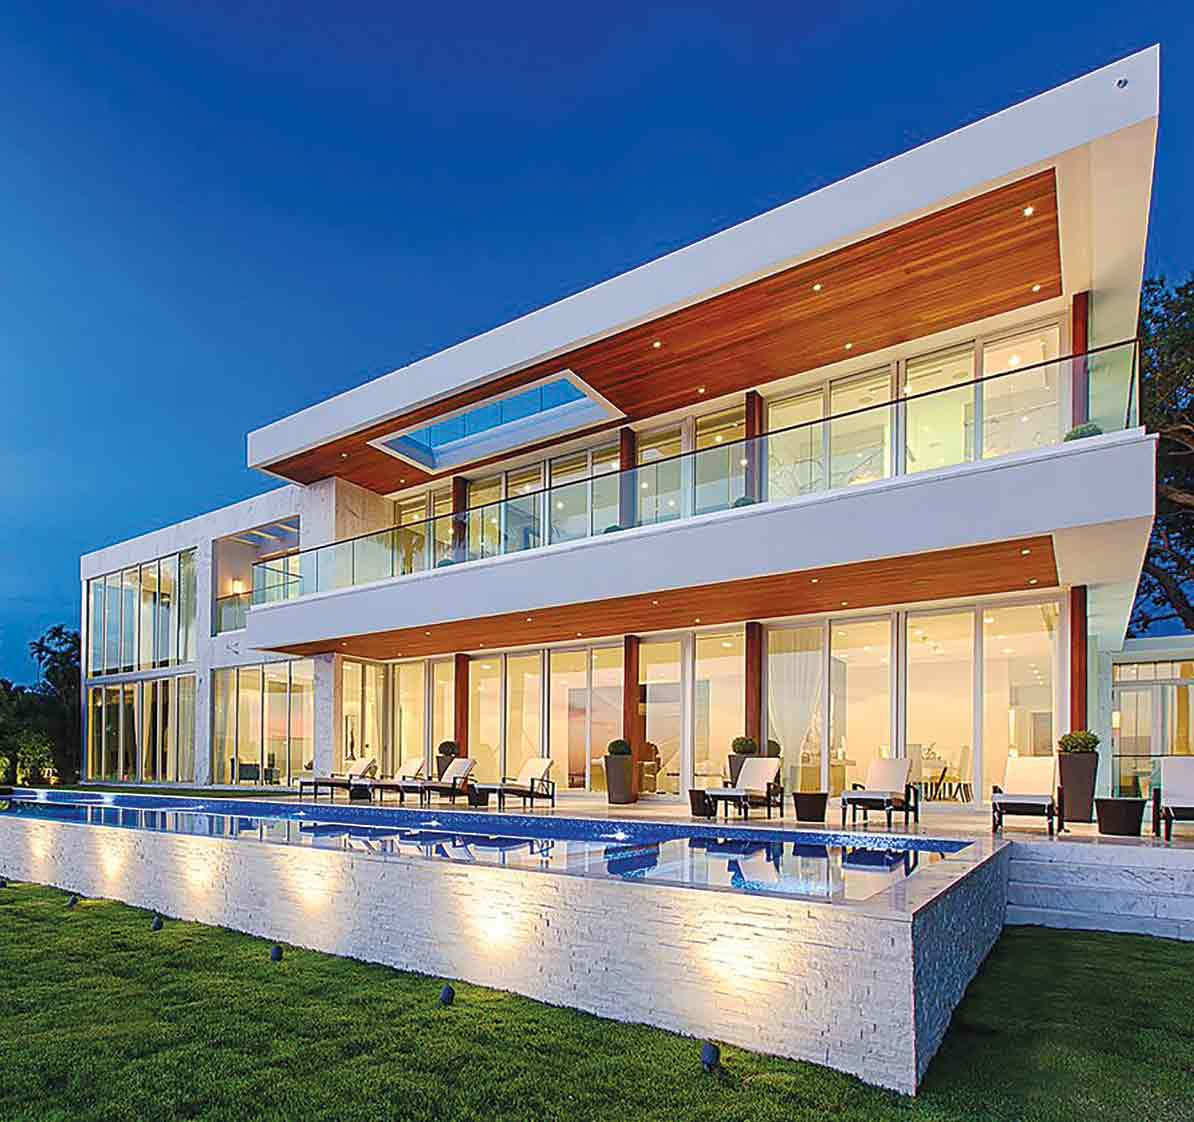 In $10 million home sales, Miami Beach a leader